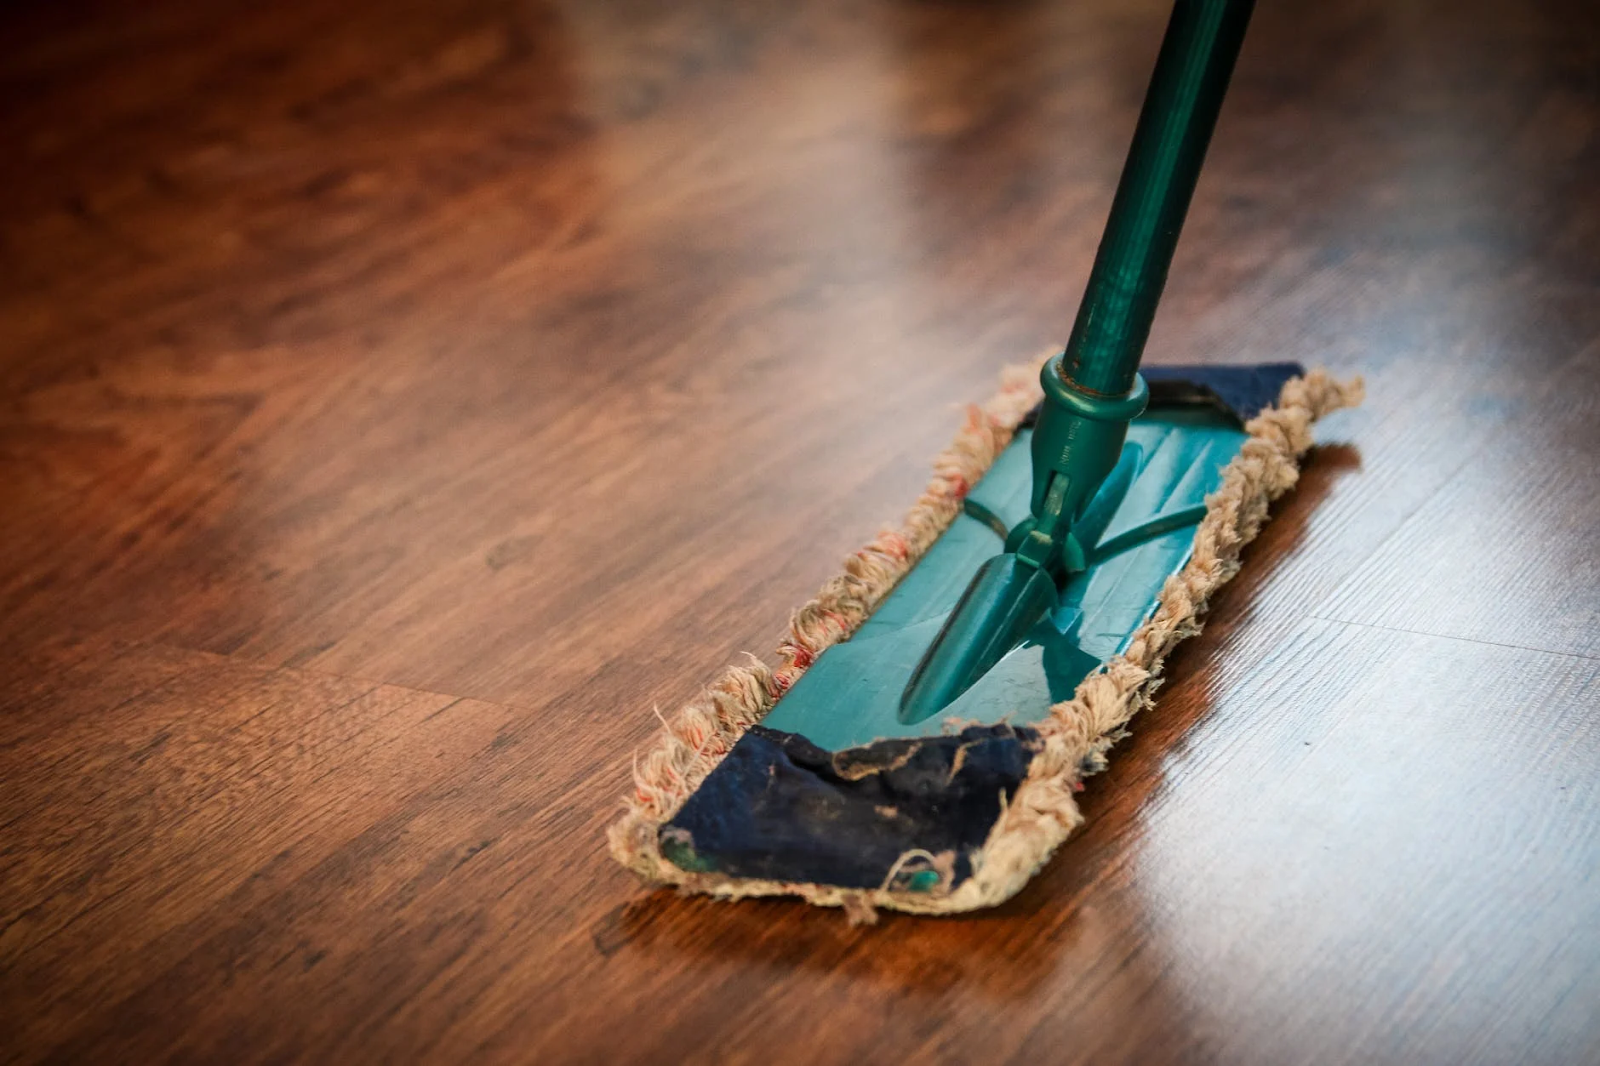 mopping hardwood flooring